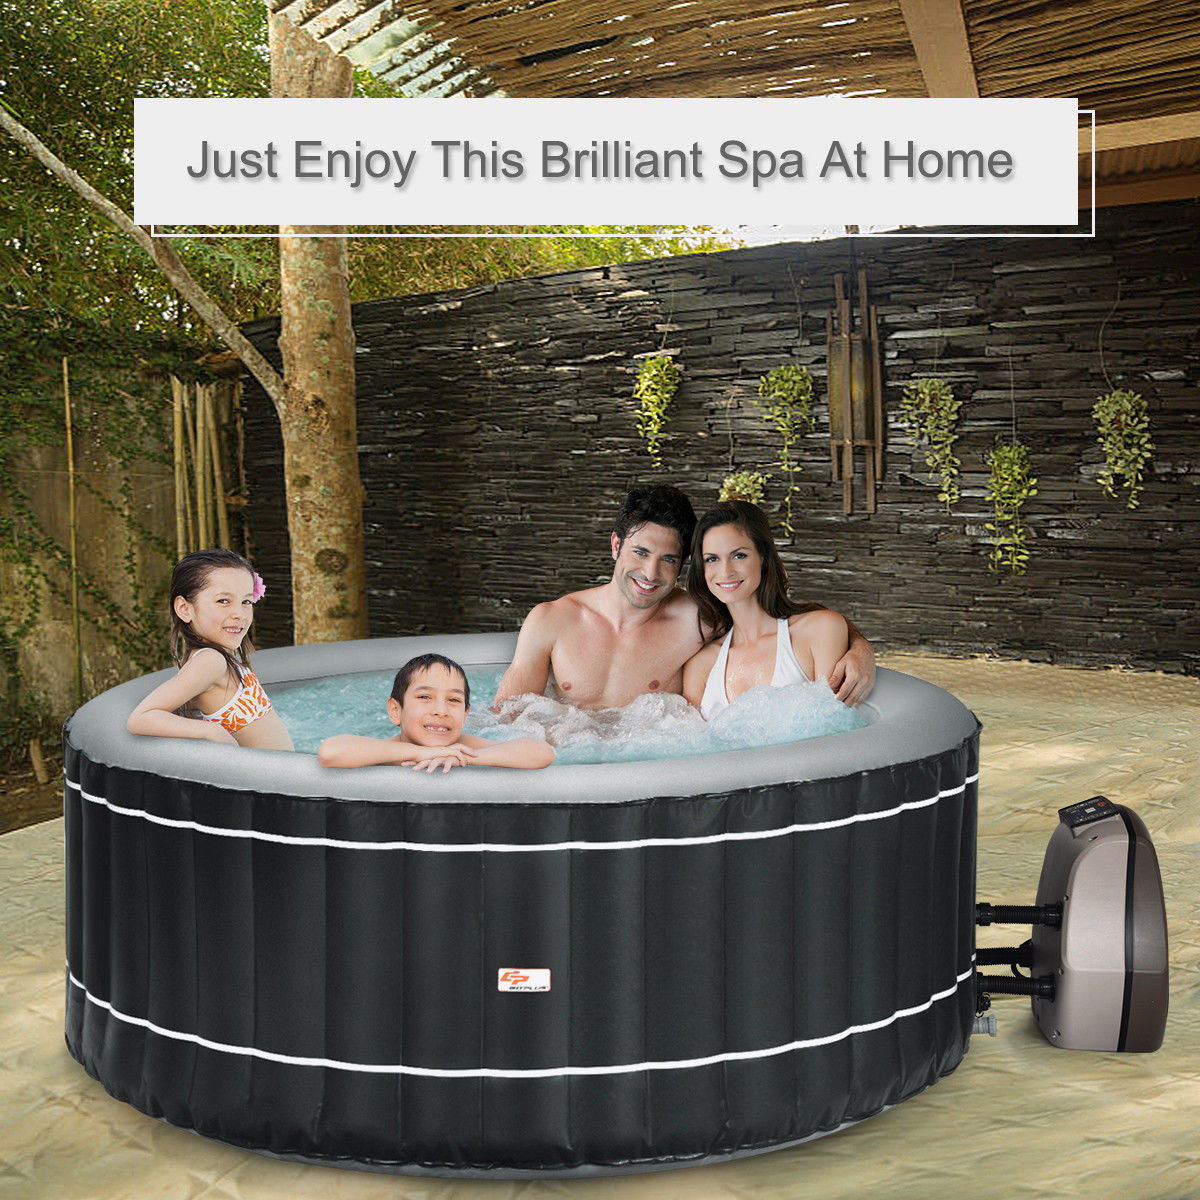 4-Person Inflatable Hot Tub Portable Outdoor Bubble Jet Leisure Massage Spa Gray - image 3 of 8